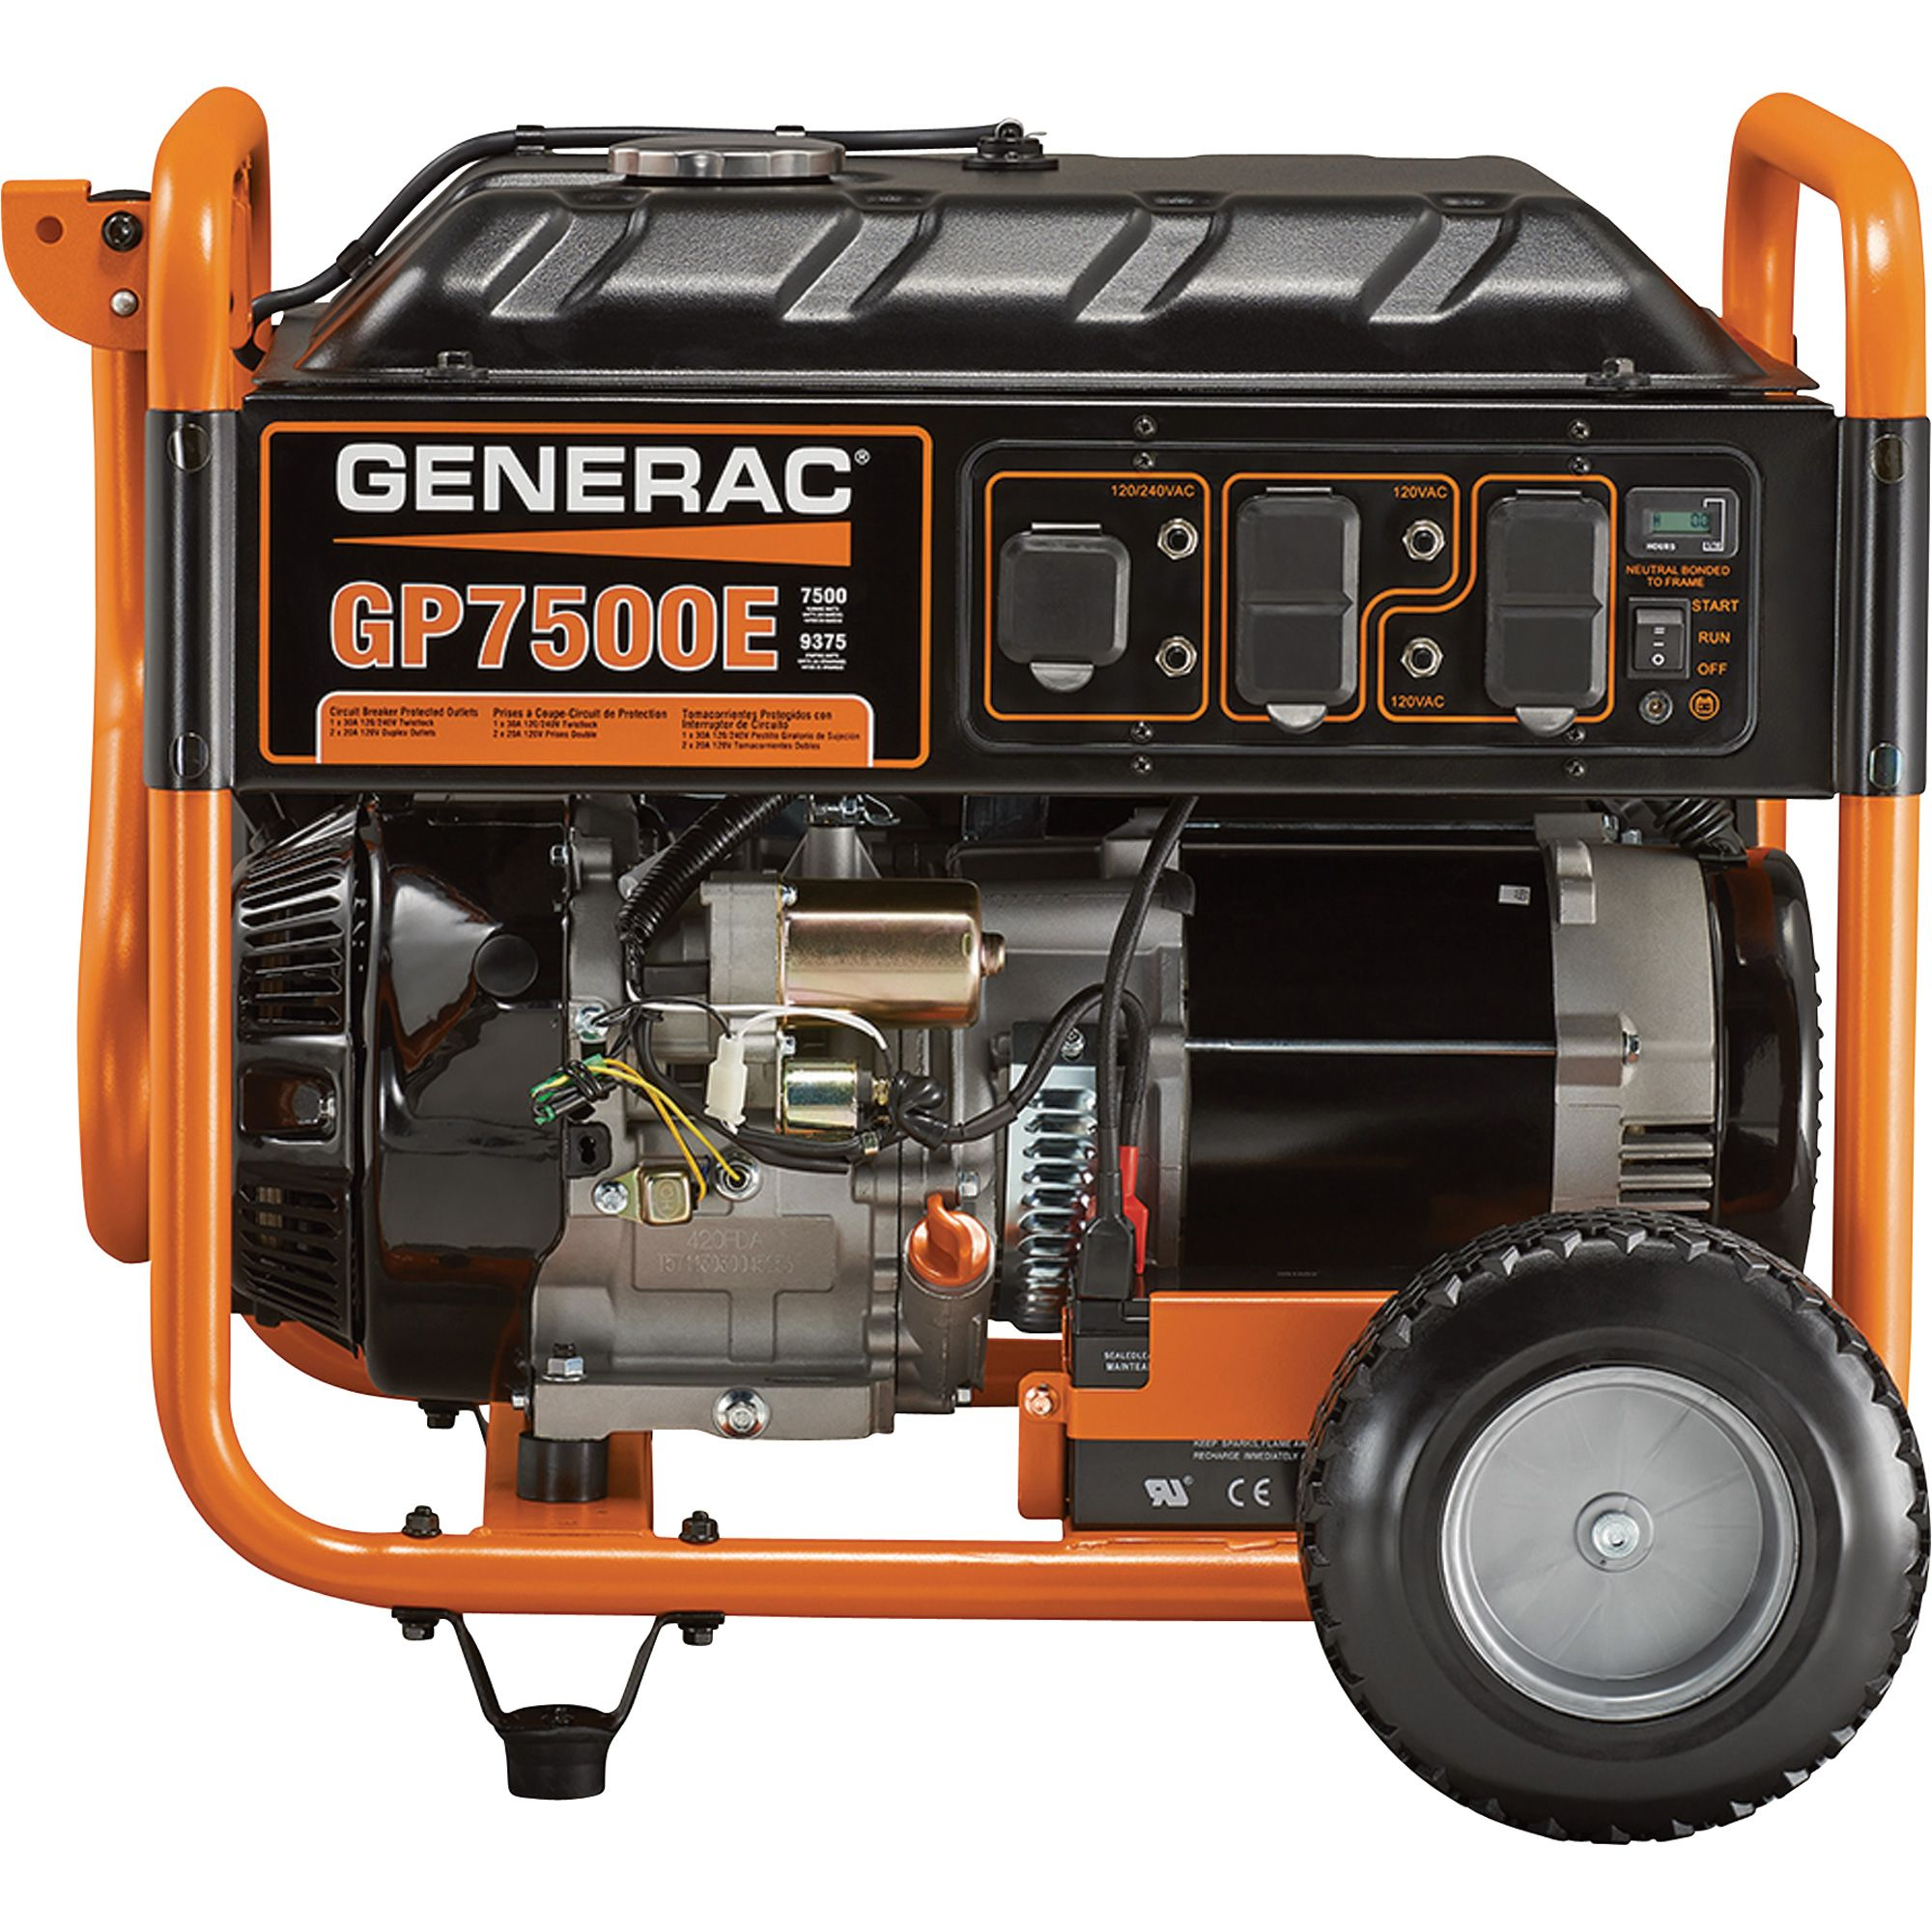 medium resolution of this generac gp7500e portable generator is easy to use in a variety of applications and offers affordable reliability the 420cc generac ohv engine has